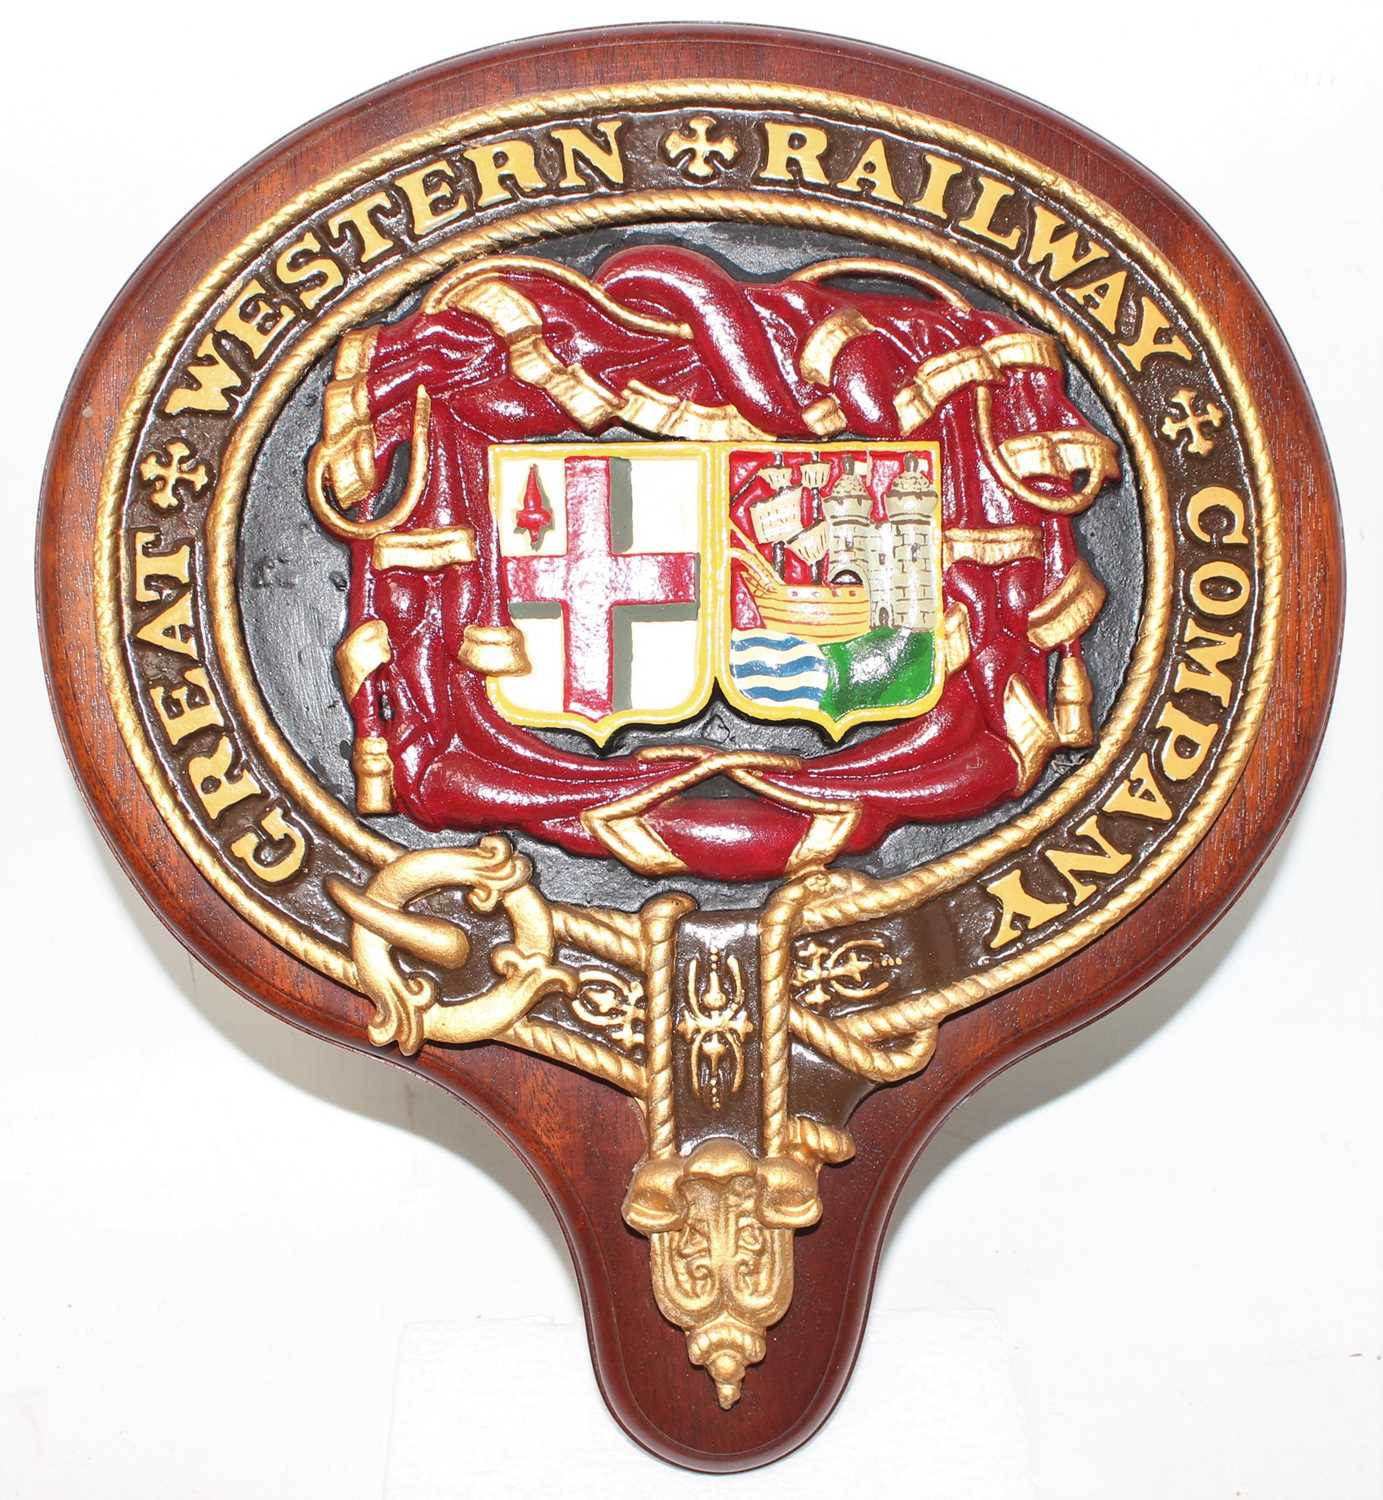 Lot 2 - A reproduction Great Western Railway company...